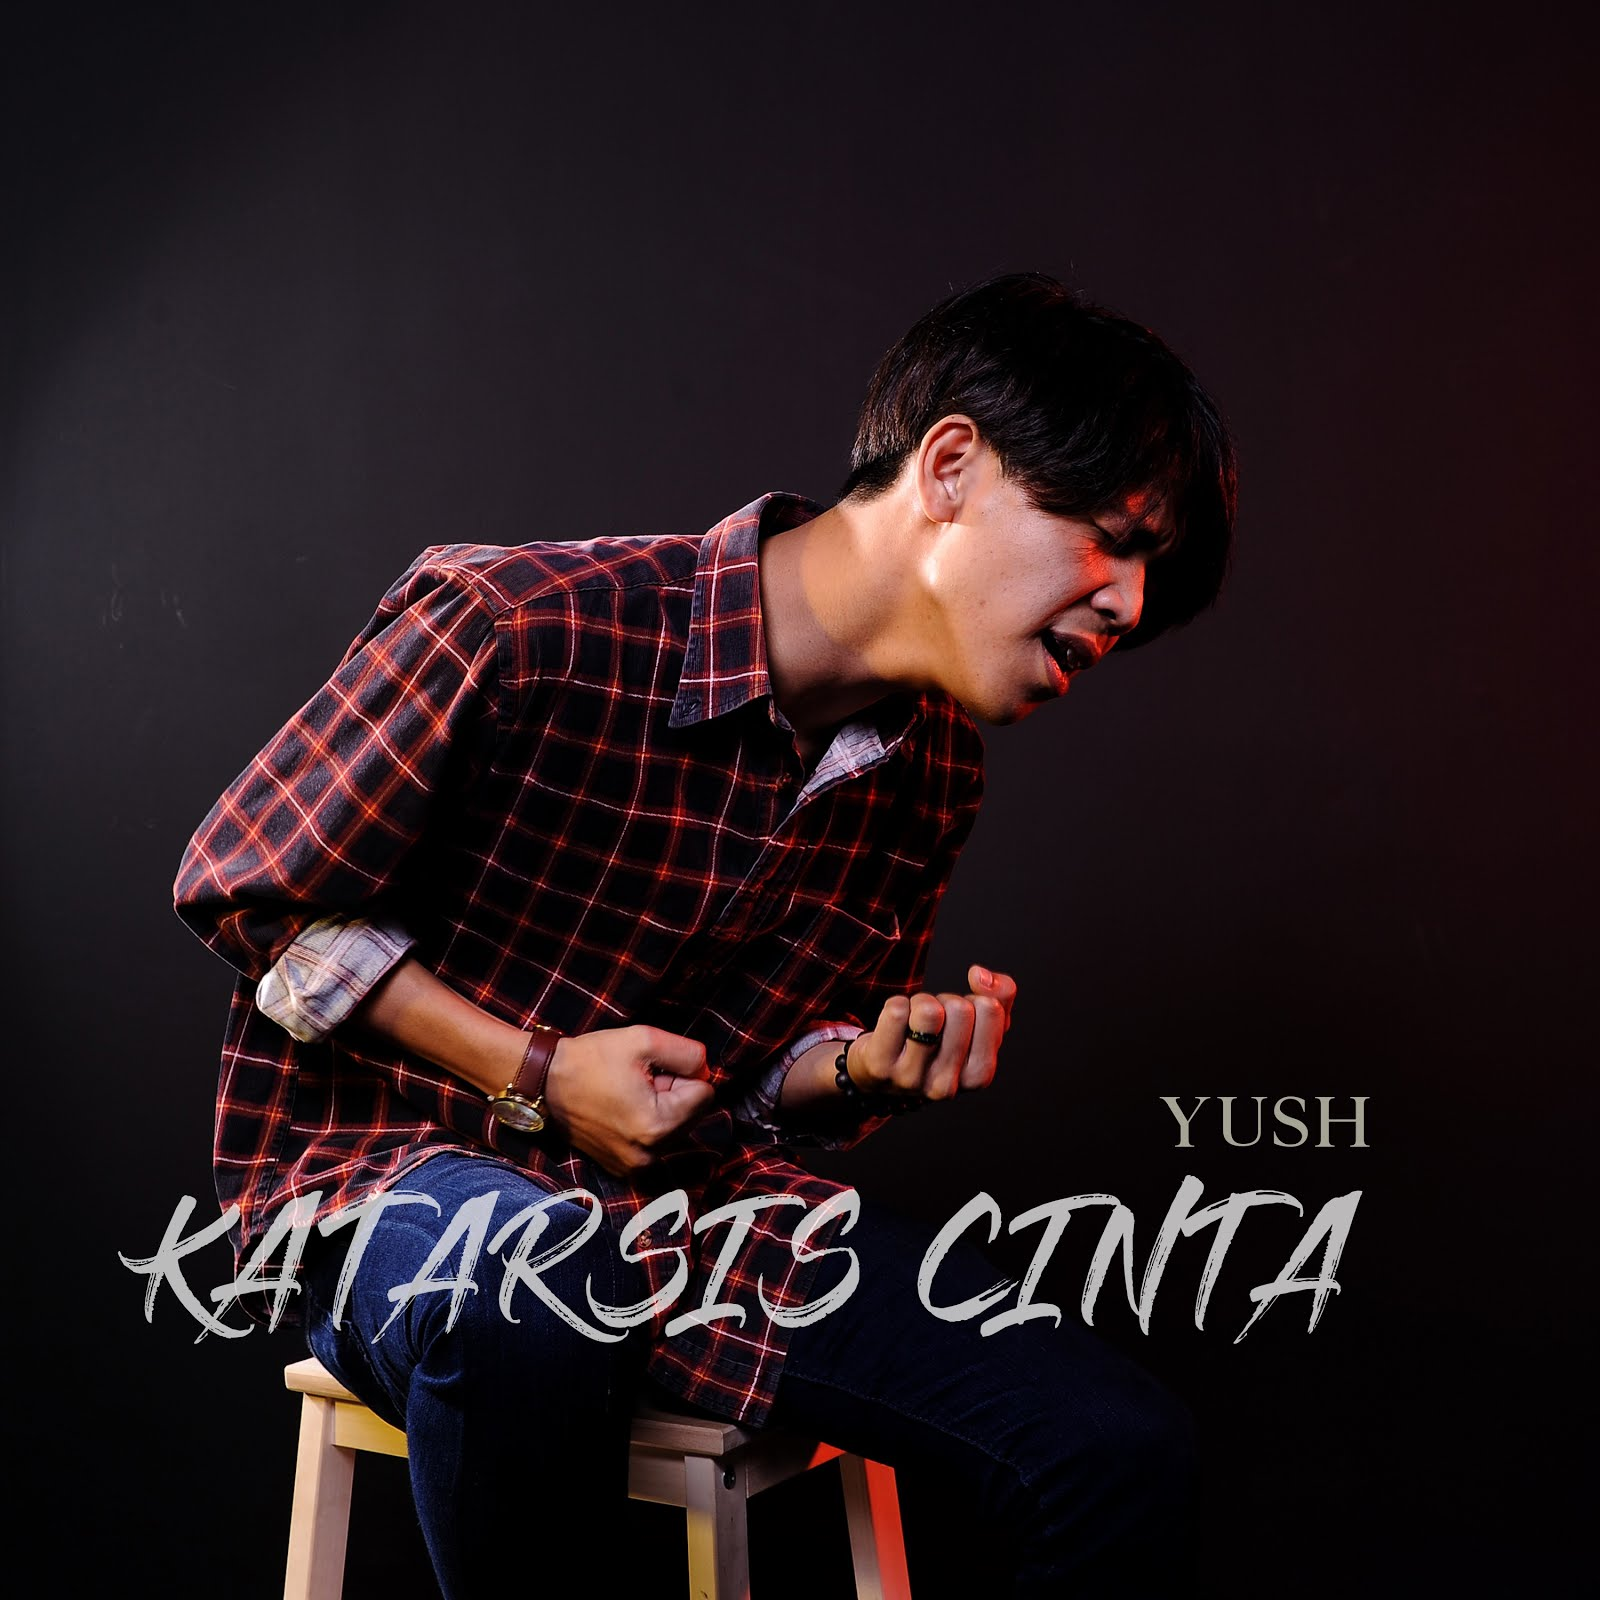 Katarsis Cinta by Yush on Spotify